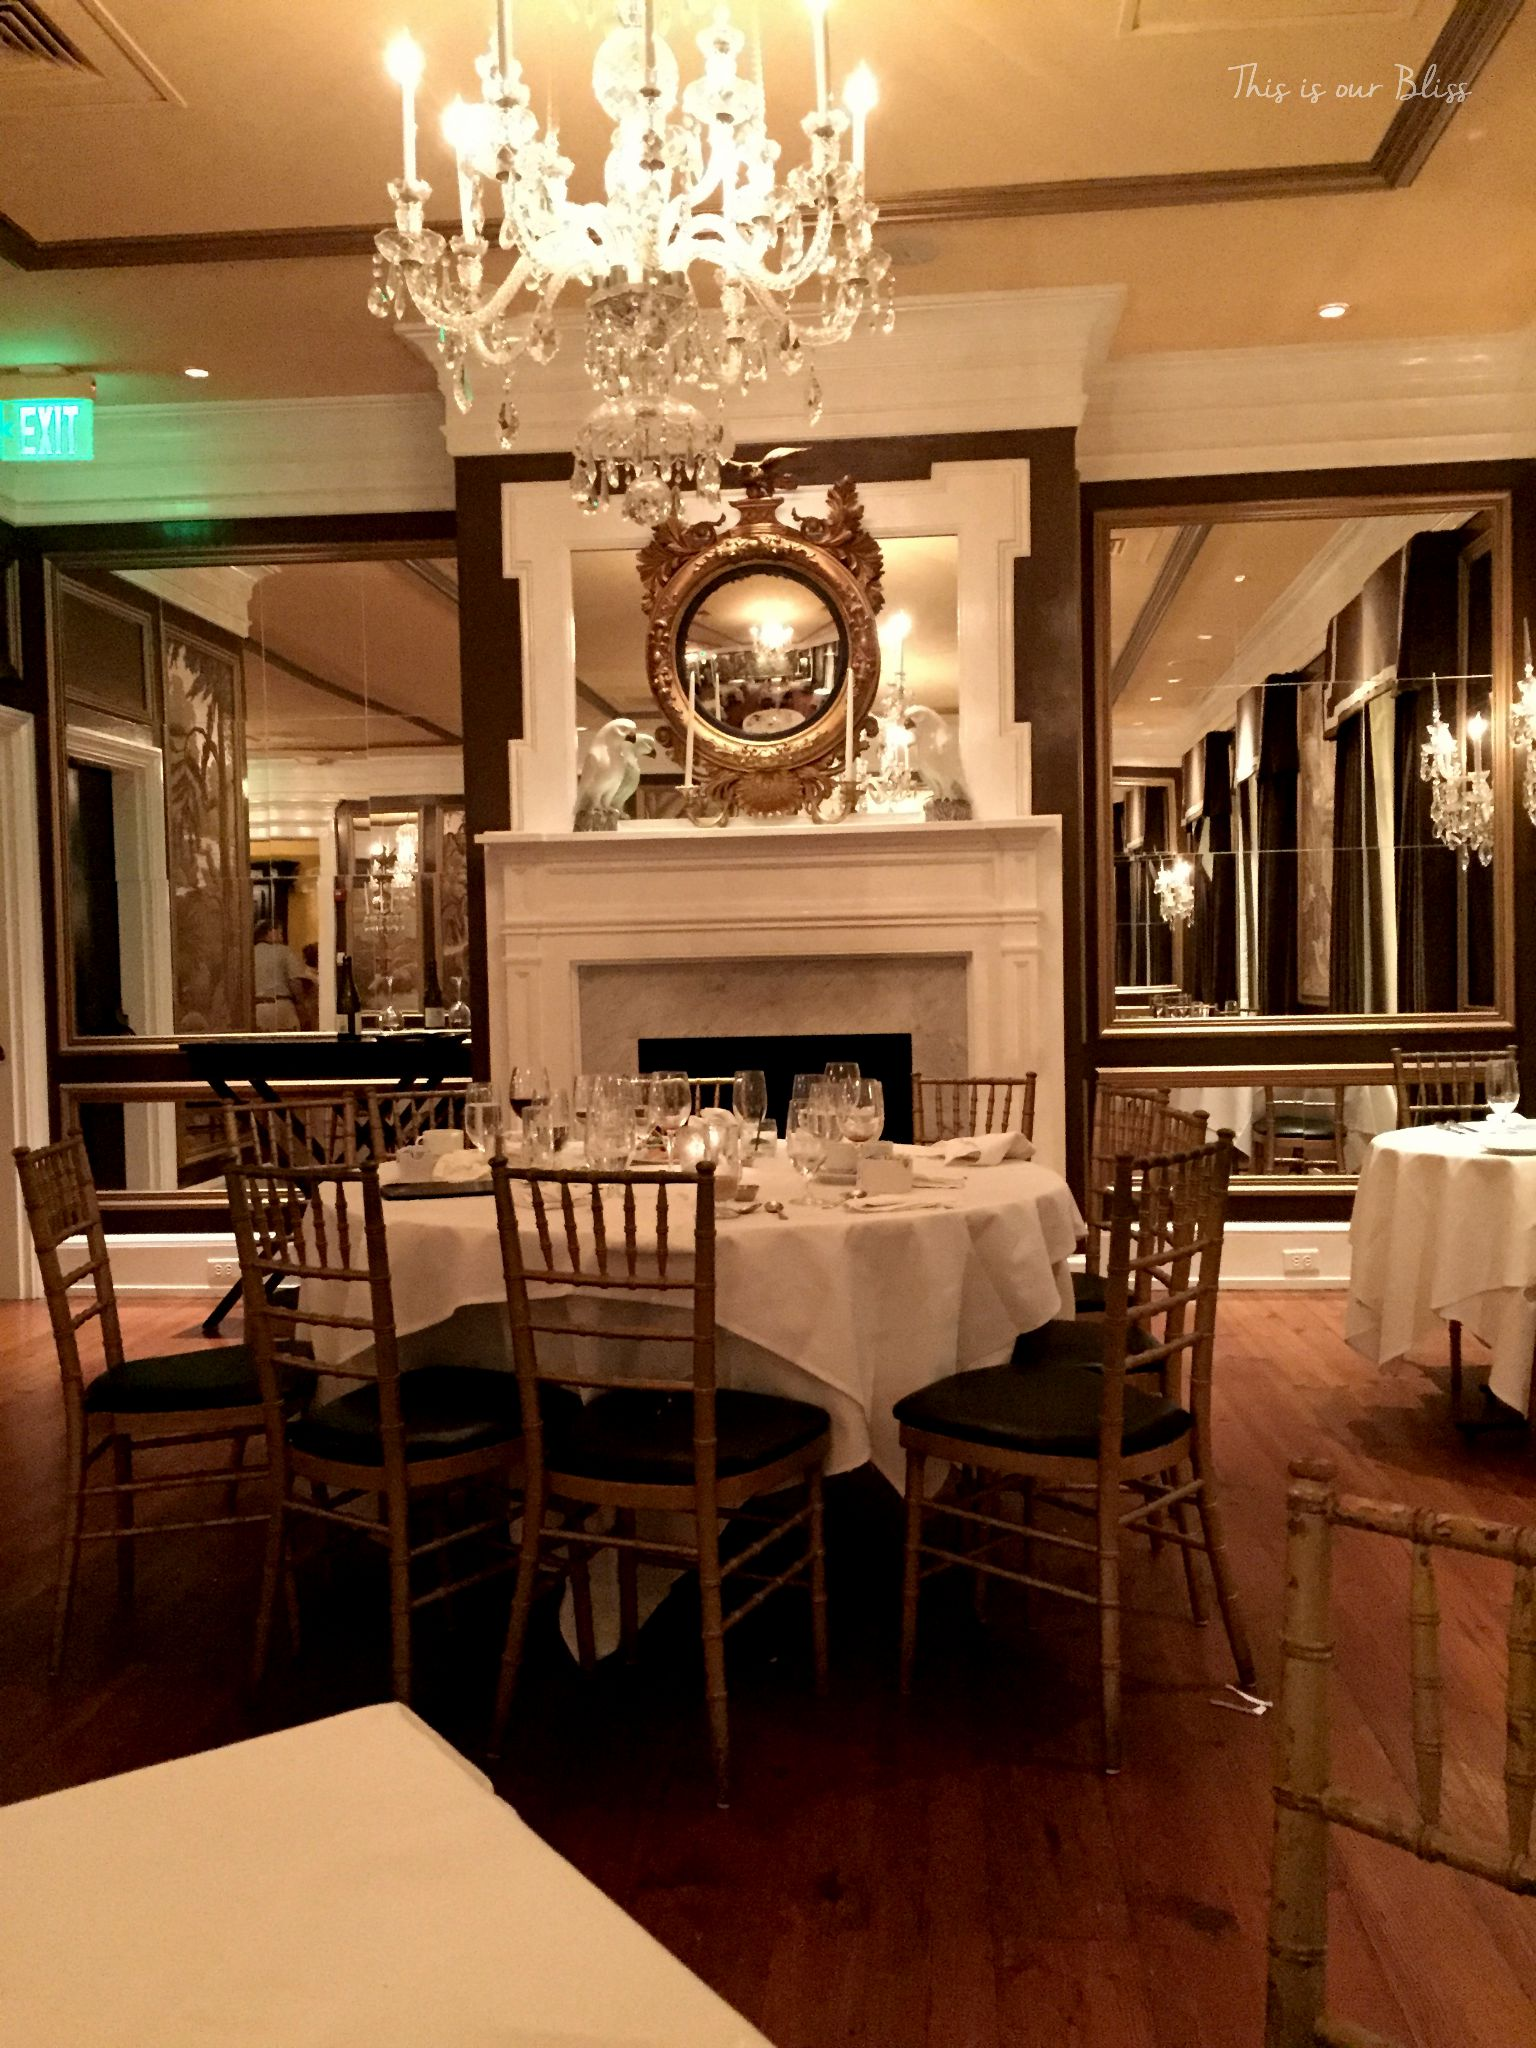 The Olde Pink House Restaurant inside Savannah GA This is our